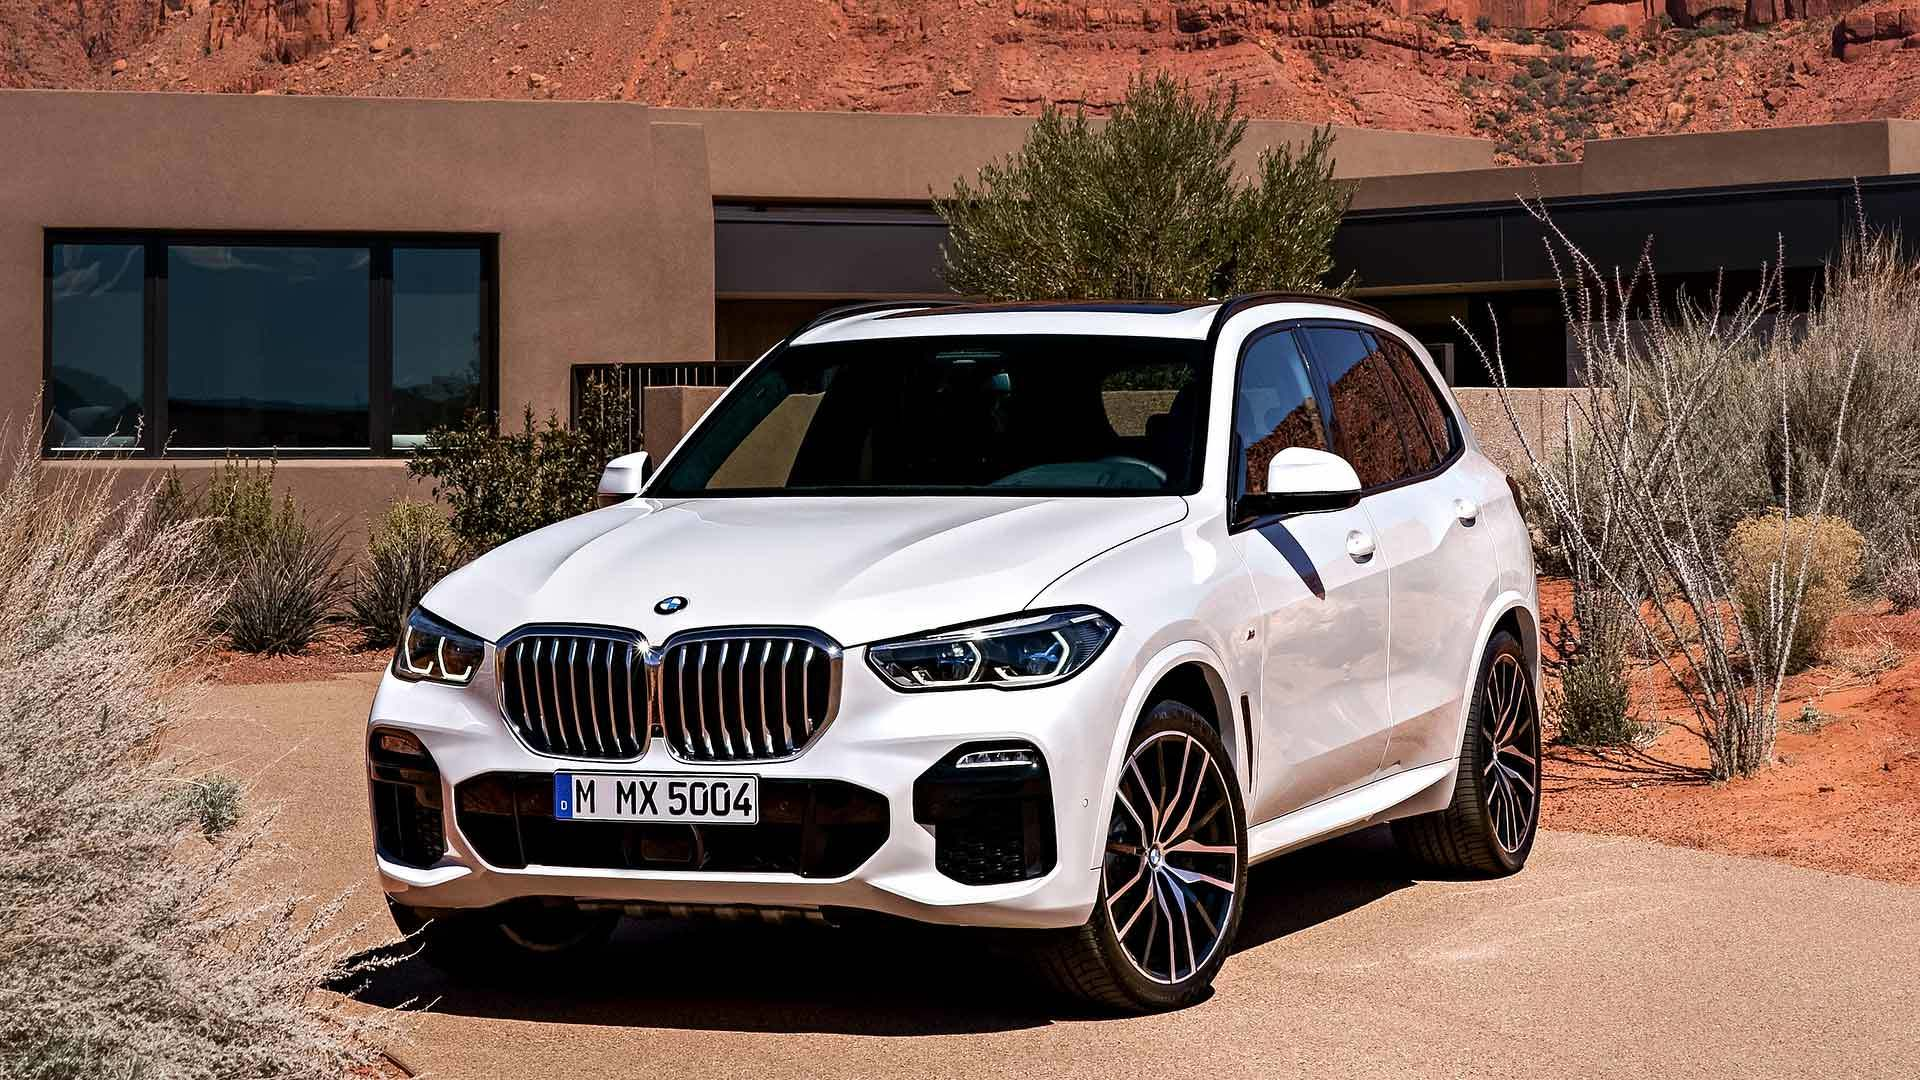 The German automotive giant BMW has held a closed presentation event dedicated to its next-generation X5 SUV series